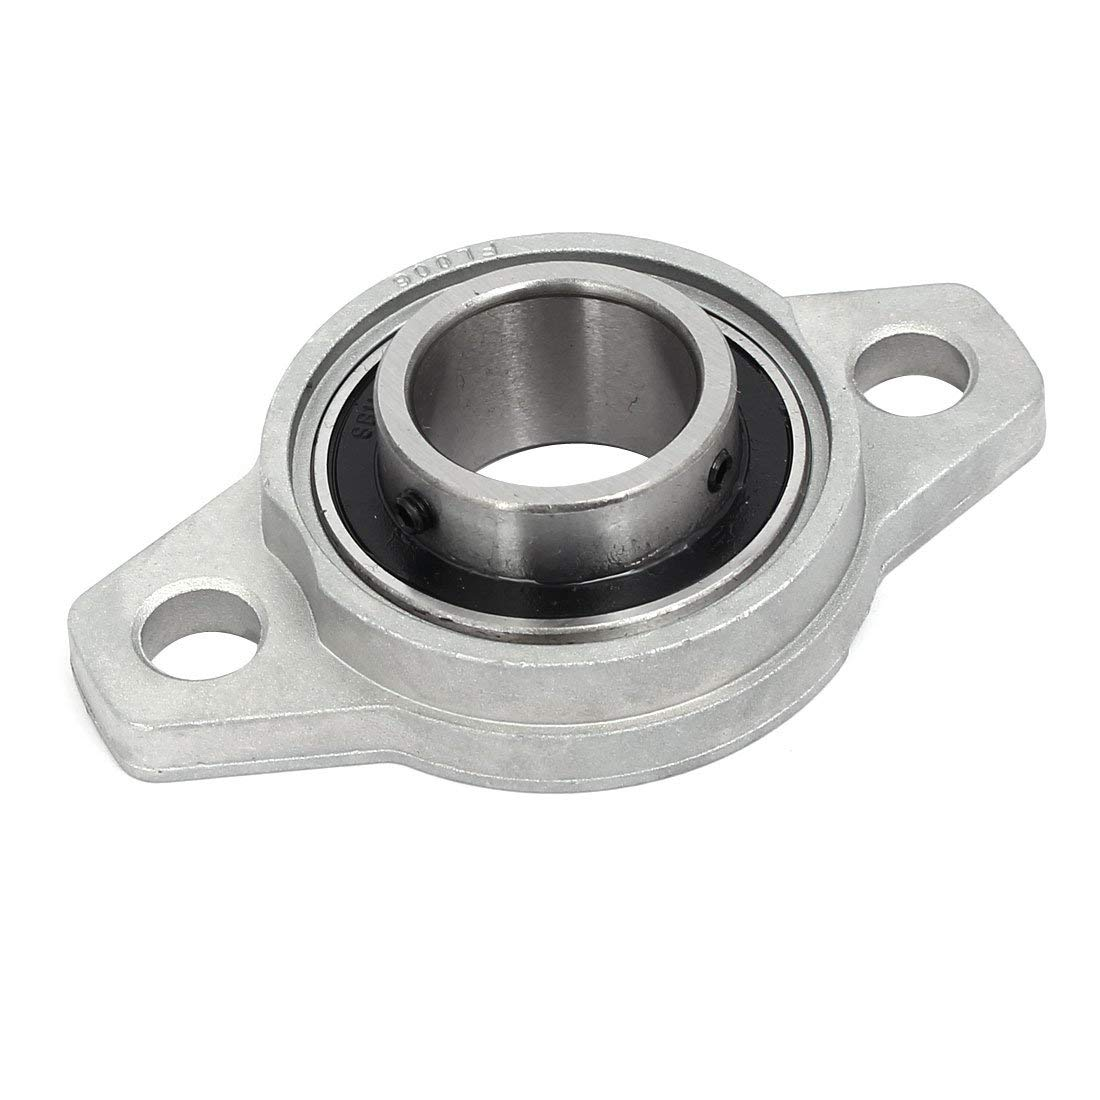 uxcell FL006 30mm Bore Zinc Alloy 2-Bolt Self-aligning Flange Mounted Ball Bearing